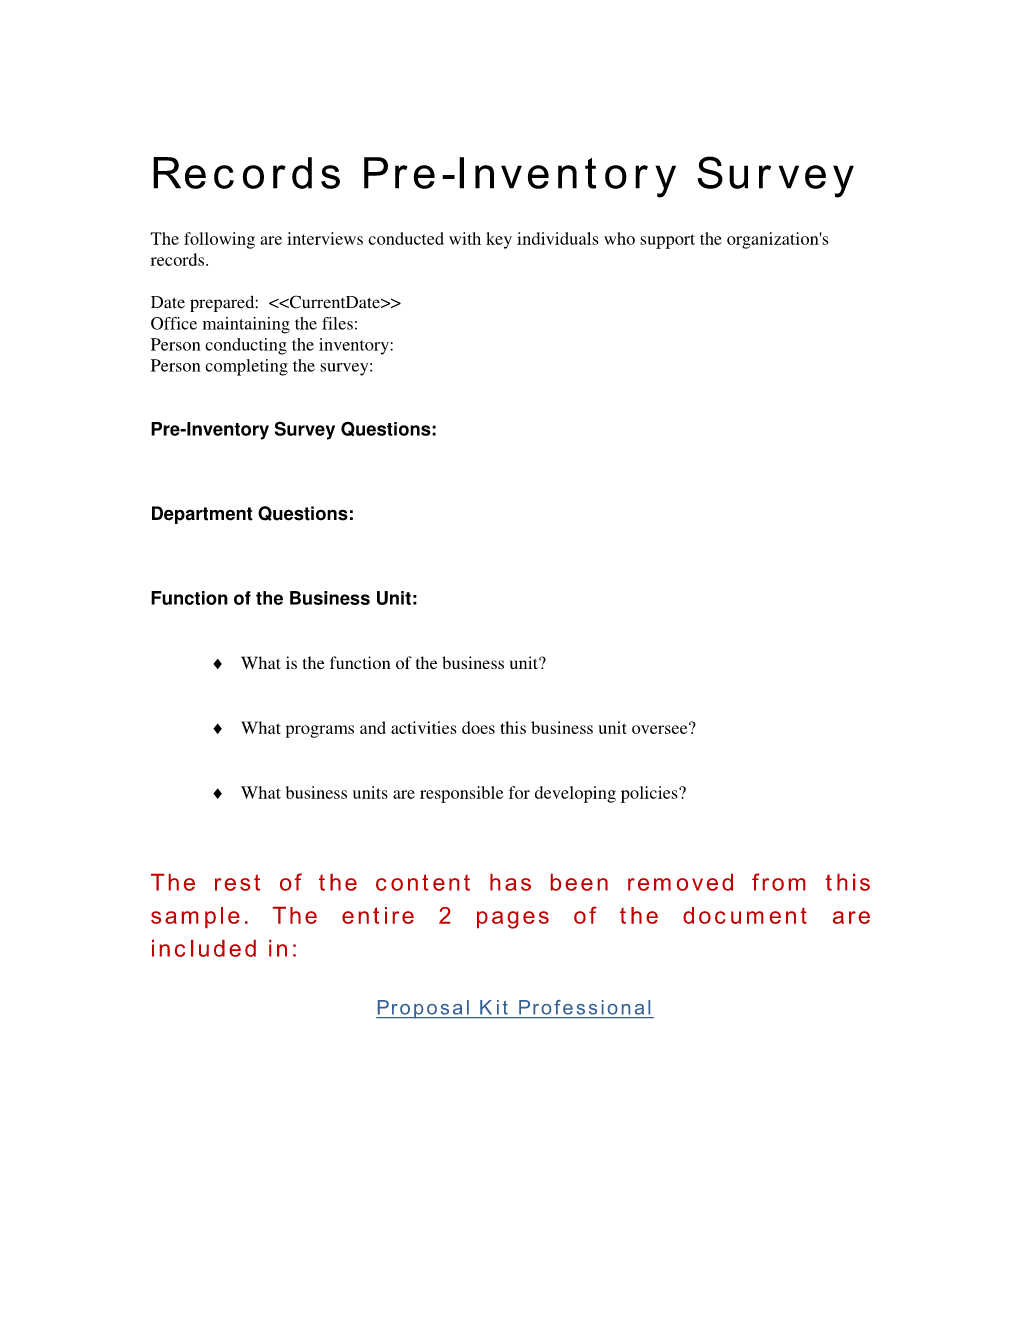 How to write your own Records Management Pre-Inventory